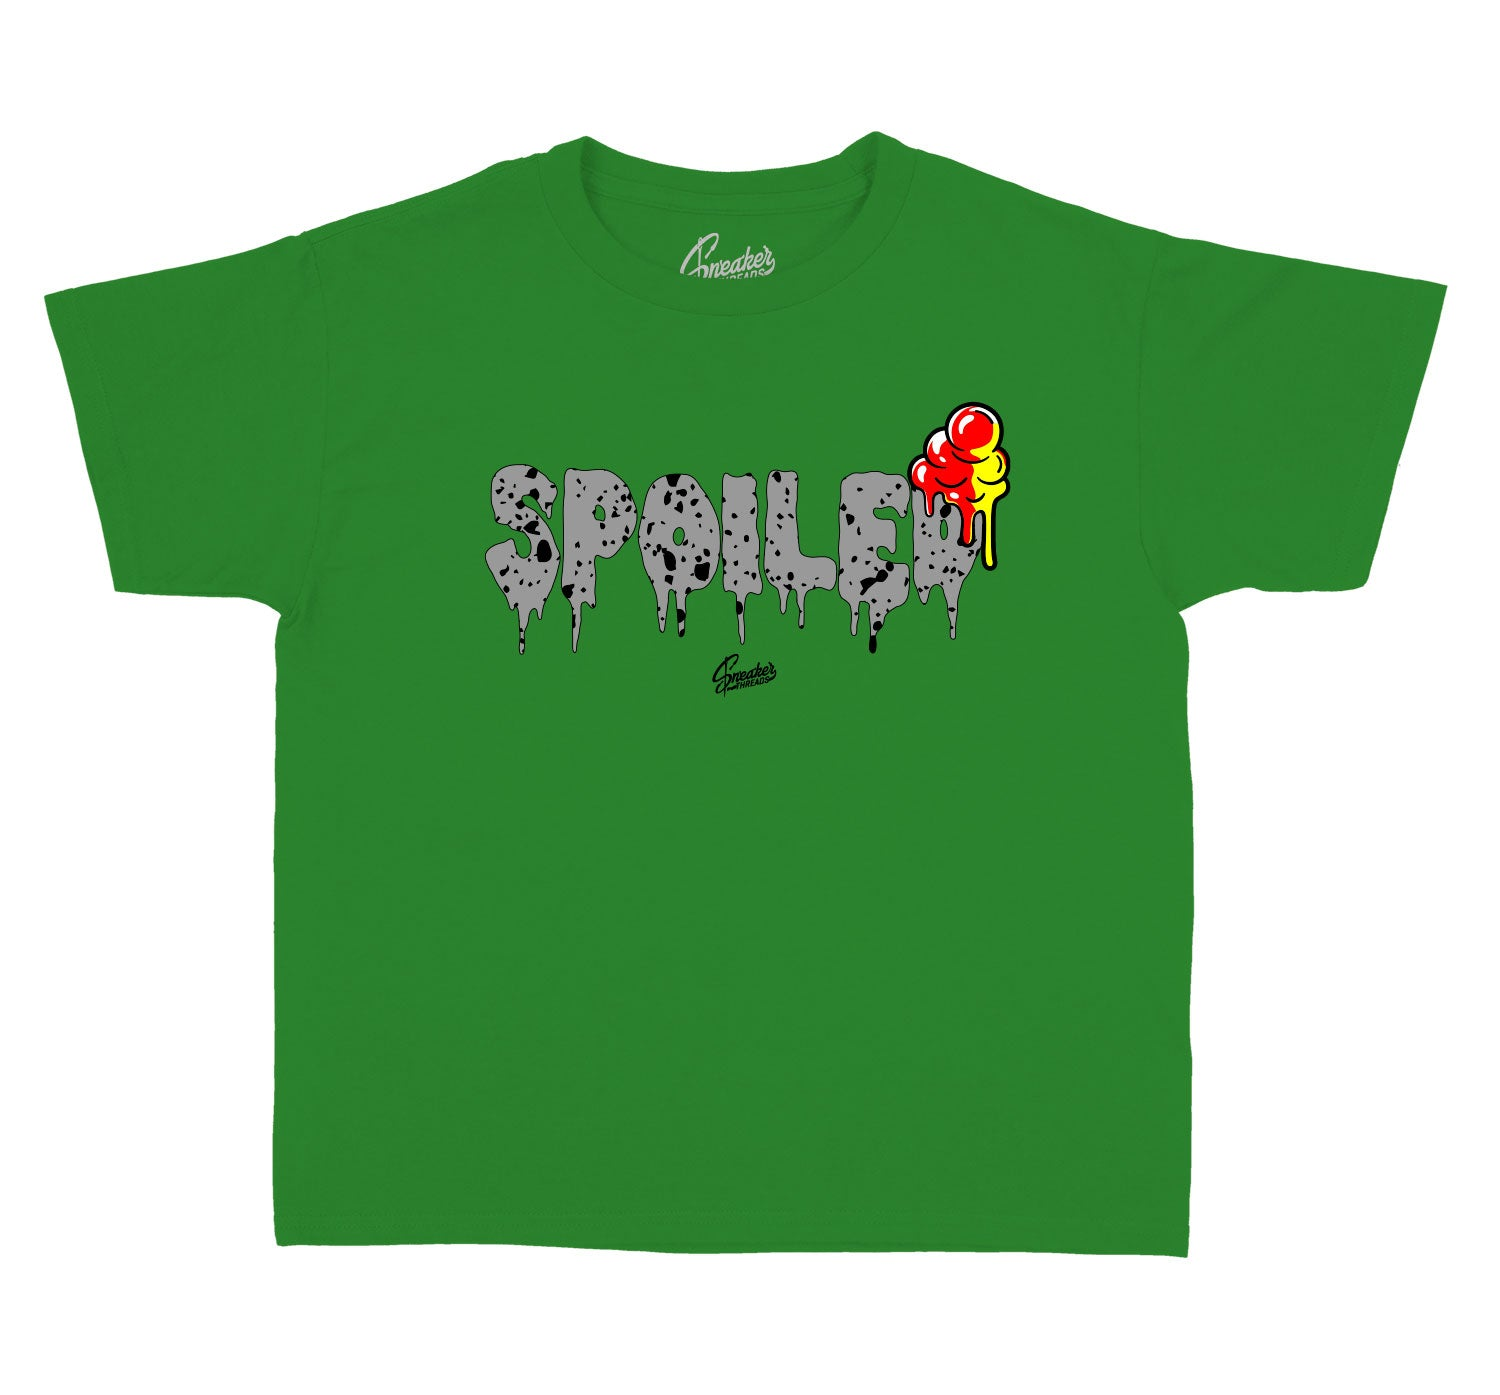 Rasta Jordan 4 sneaker collection has matches perfectly with kids tee collection